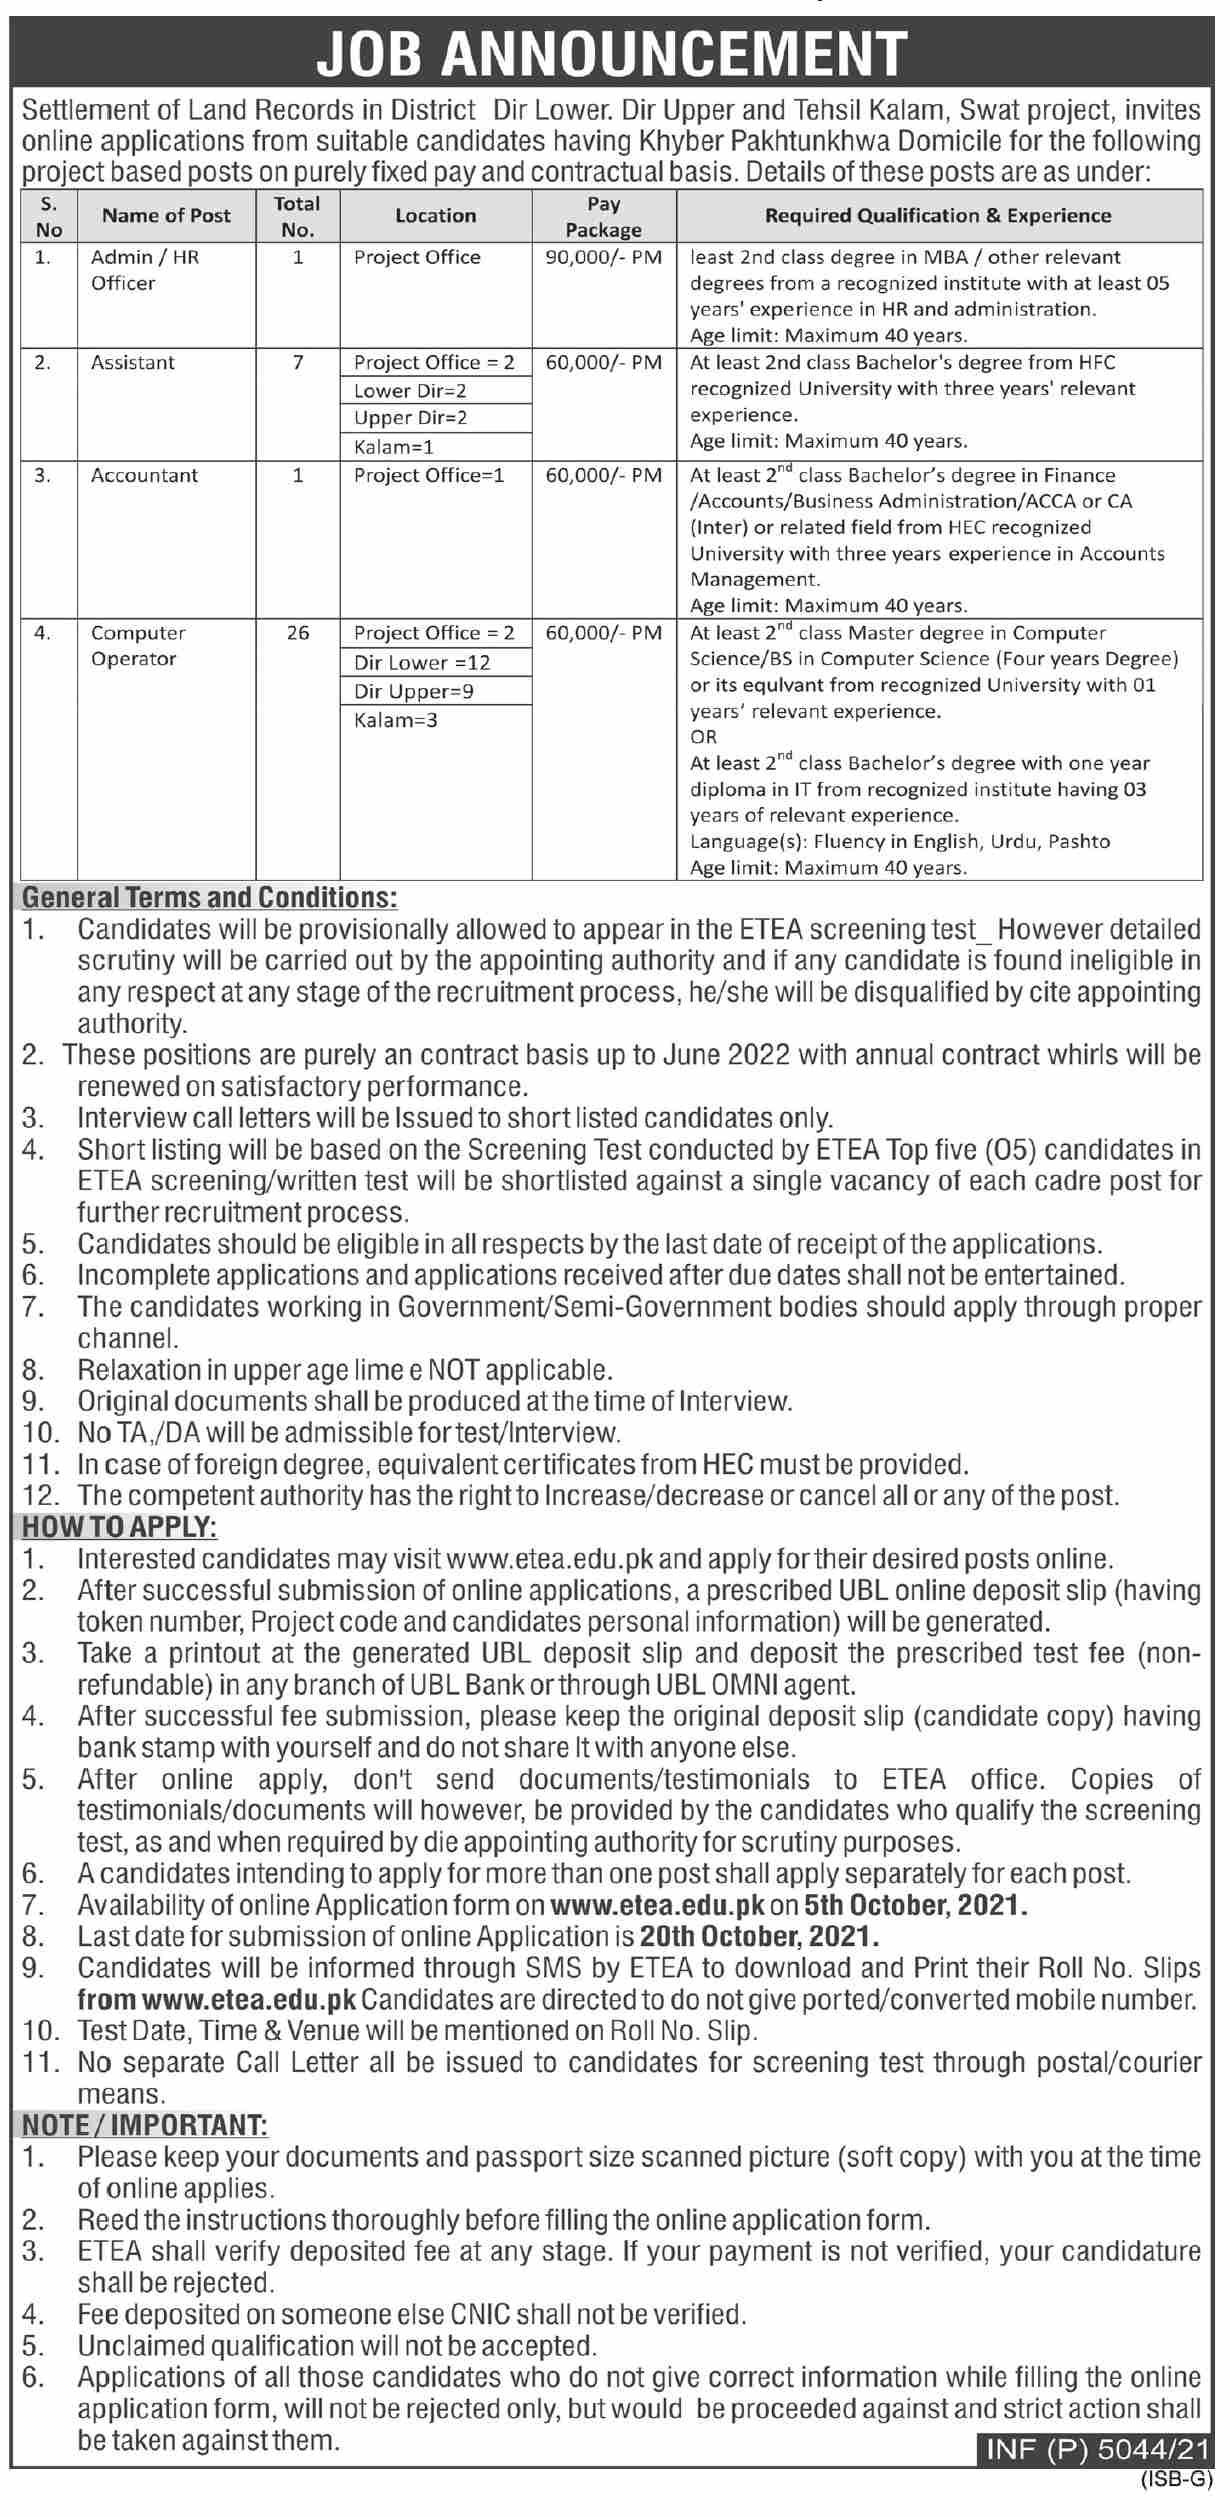 Settlement Of Land Records Swat Project Vacancies 2021 – Latest Jobs 3